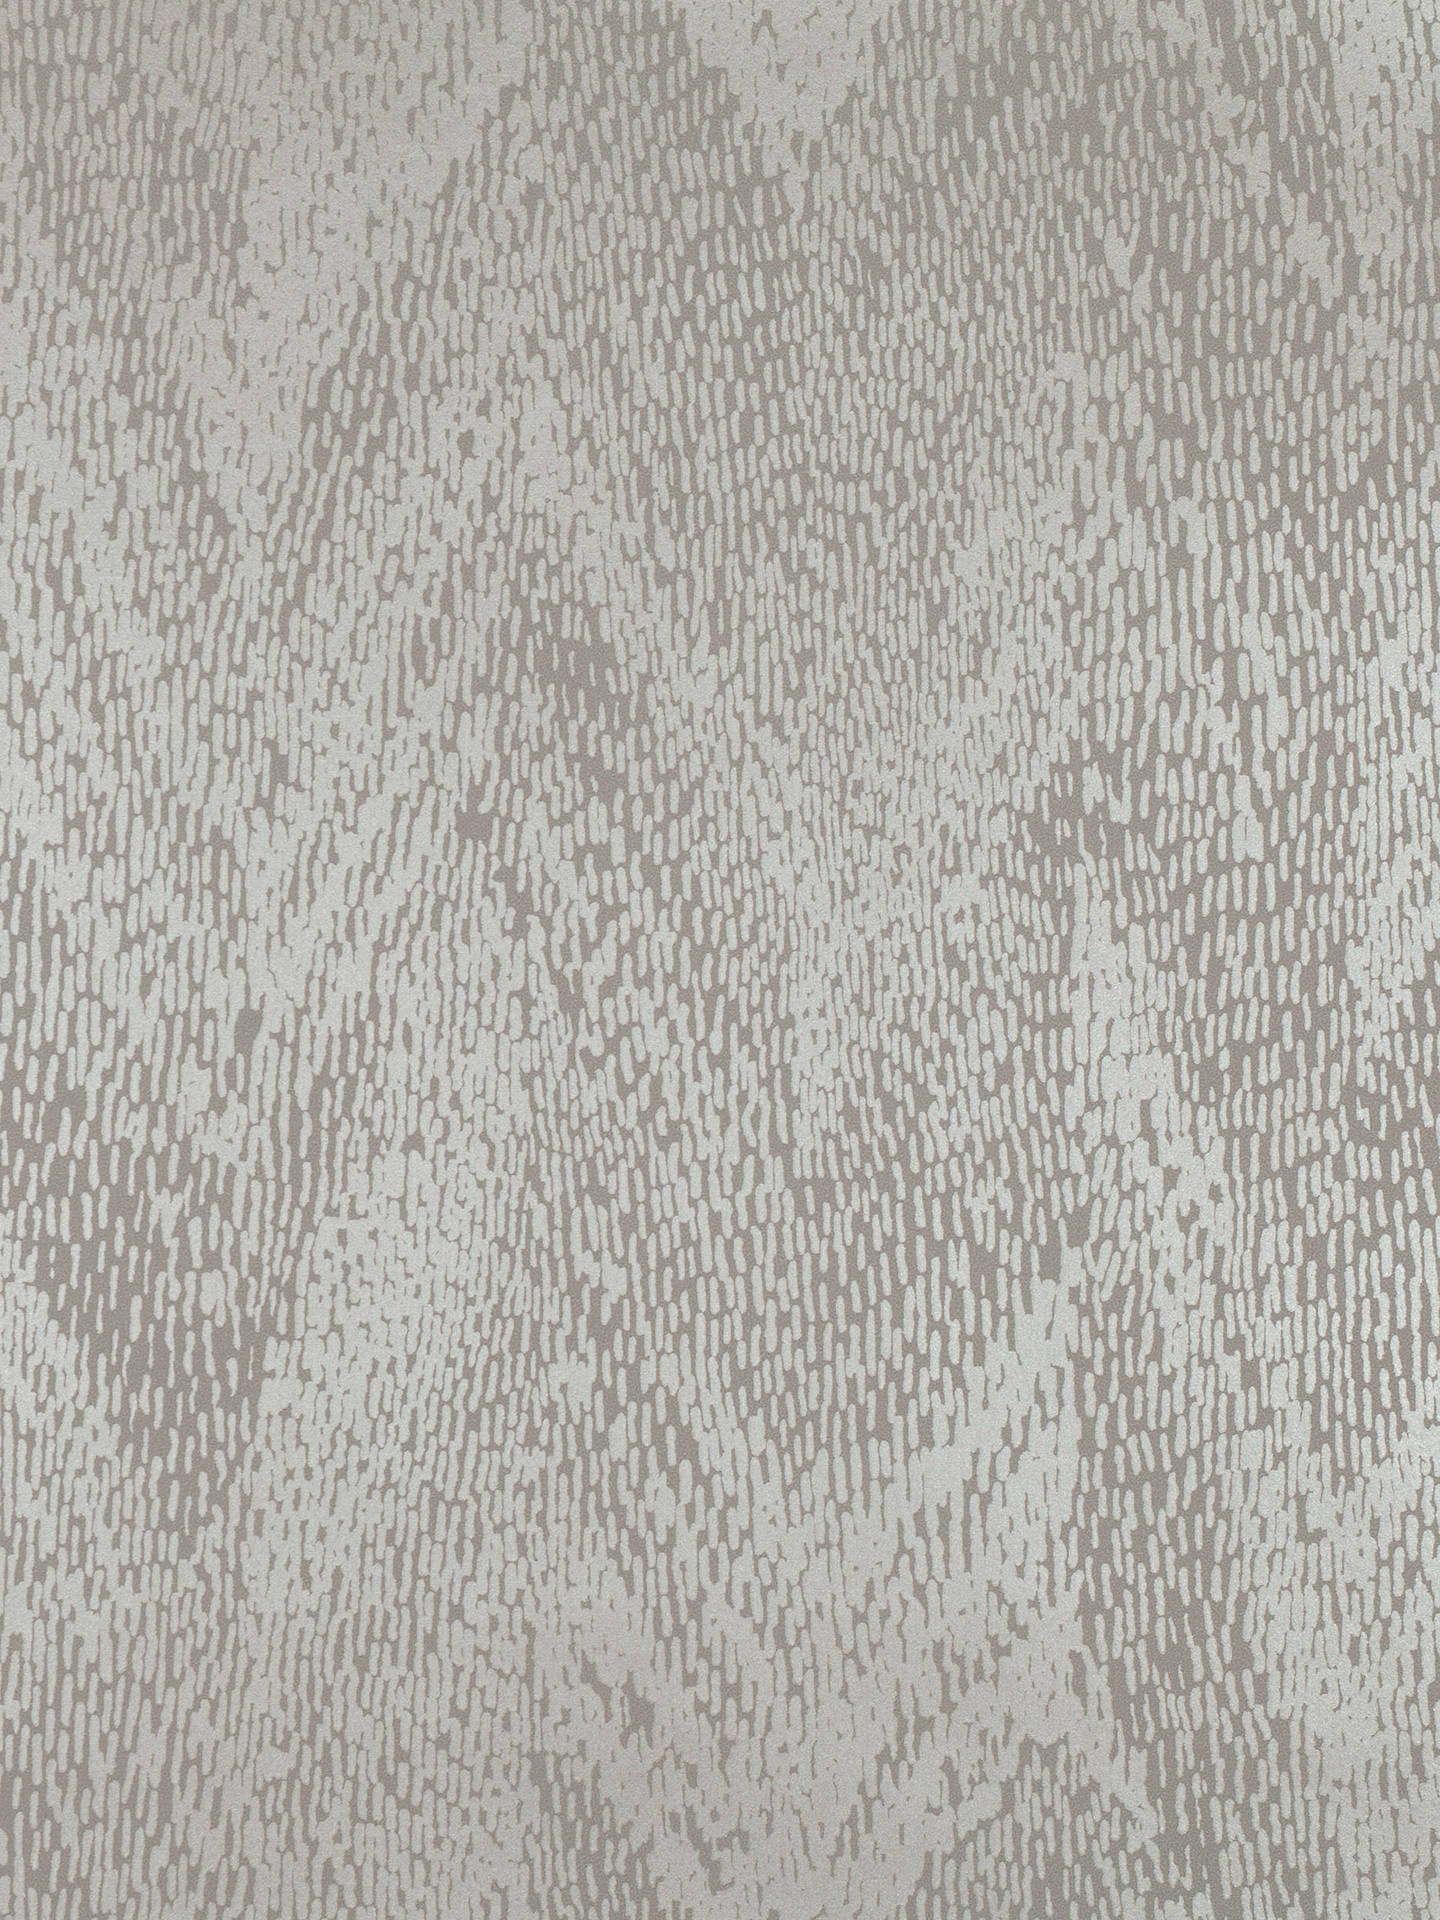 Buy Romo Itsuki Paste the Wall Wallpaper, Cobblestone W380/08 Online at johnlewis.com